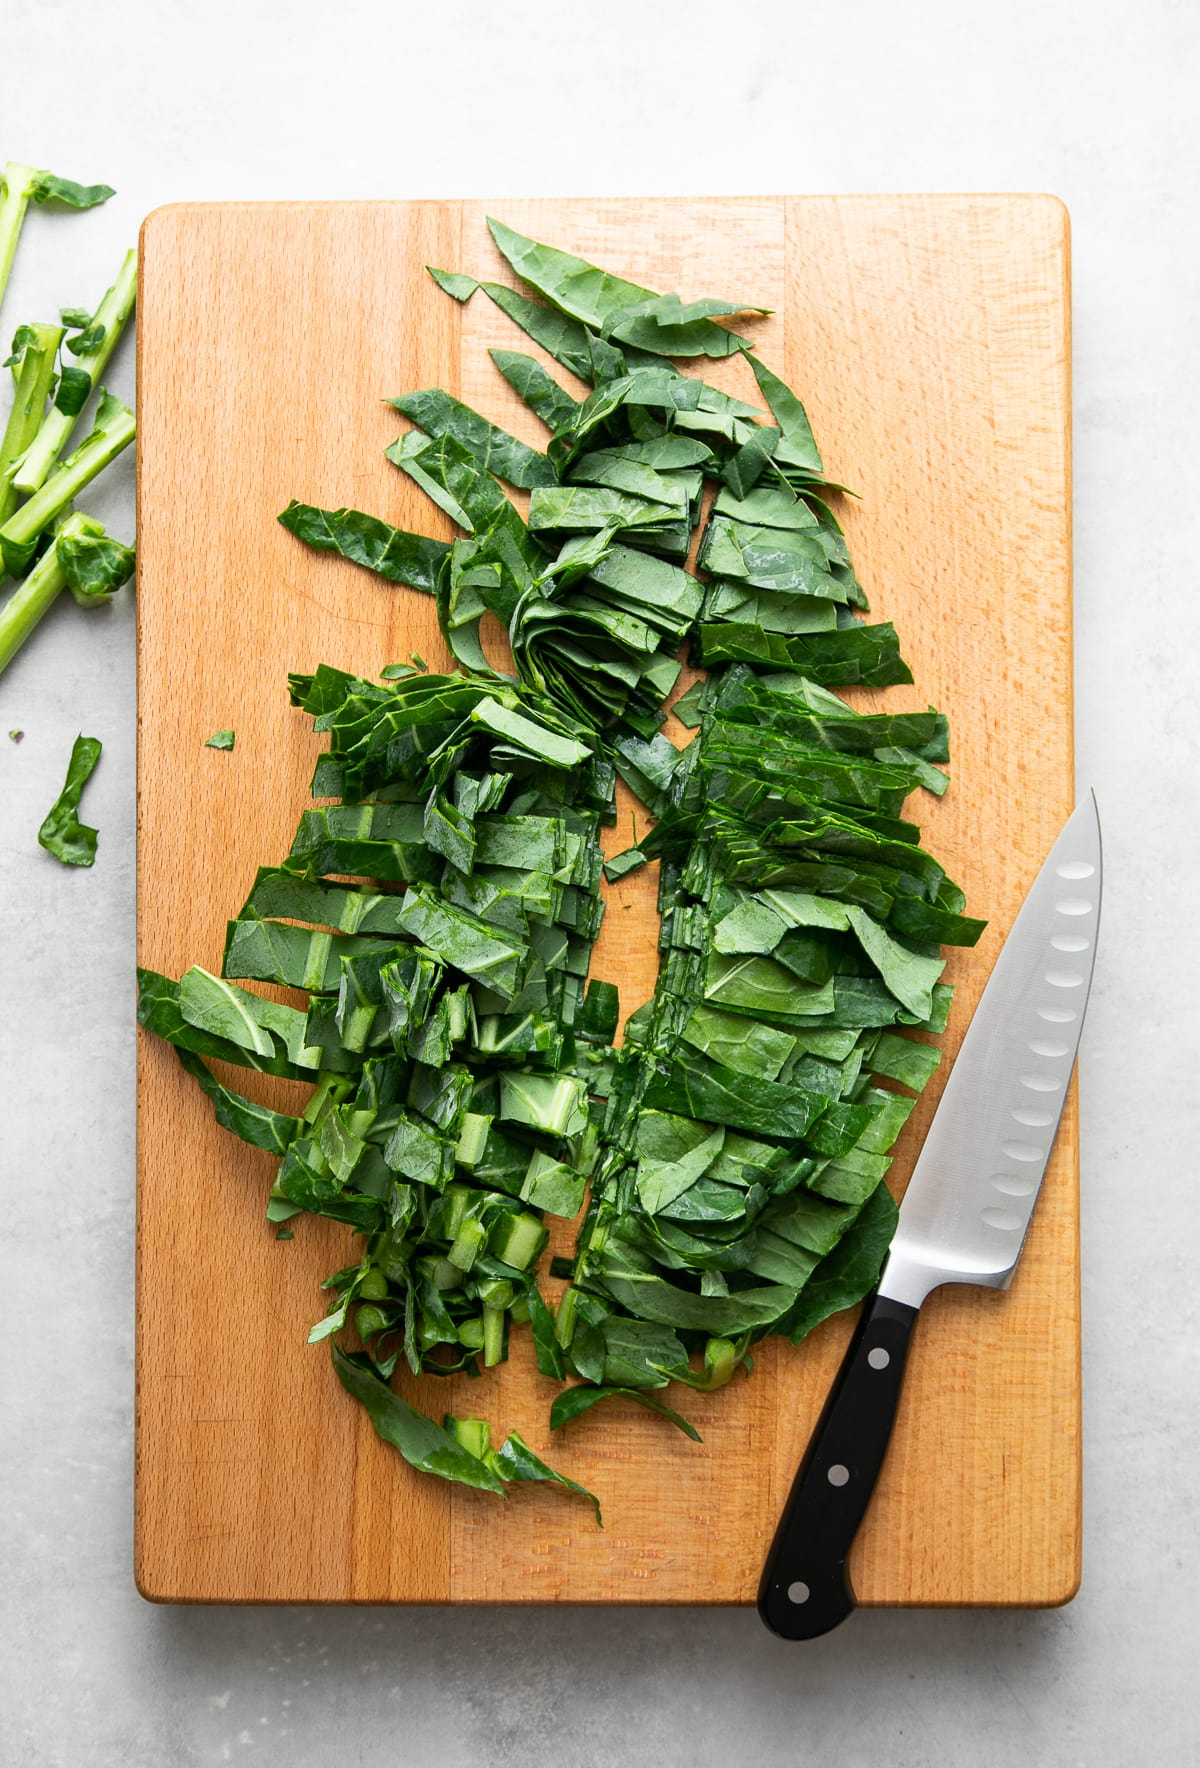 top down view of chopped collard greens on a wooden cutting board.